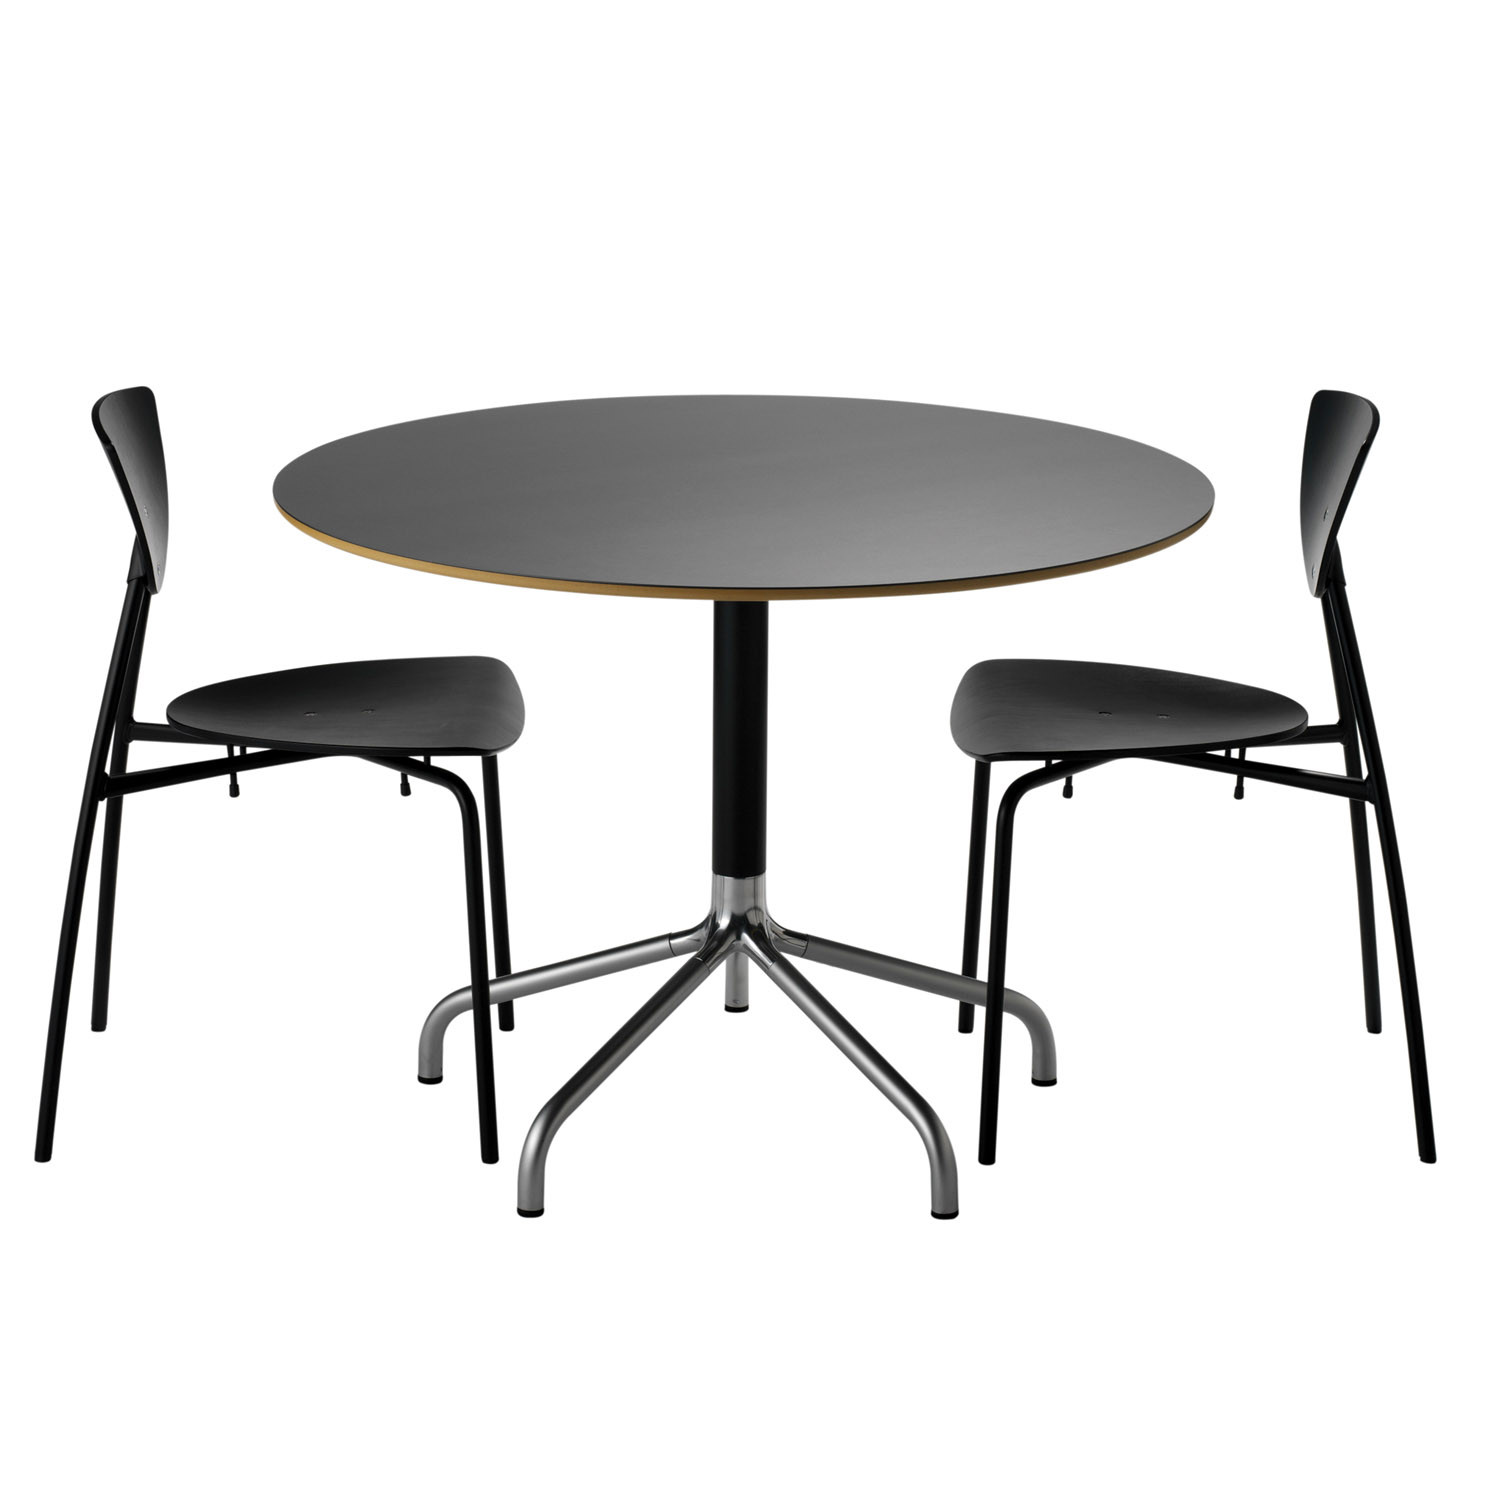 Ono Break Tables